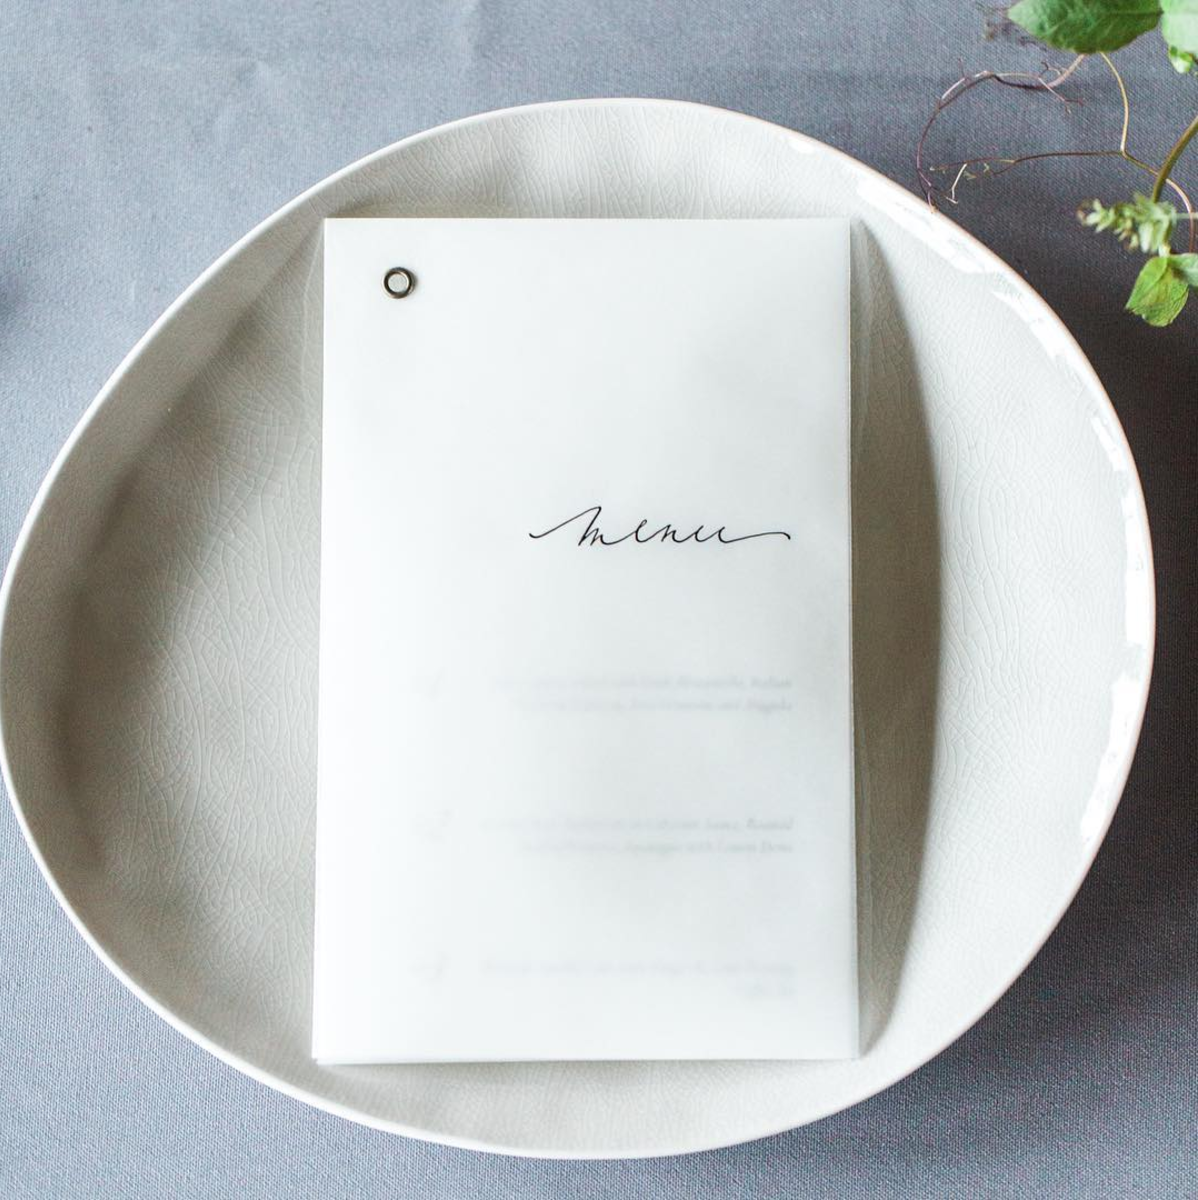 Vellum Menu by Willow Visuals